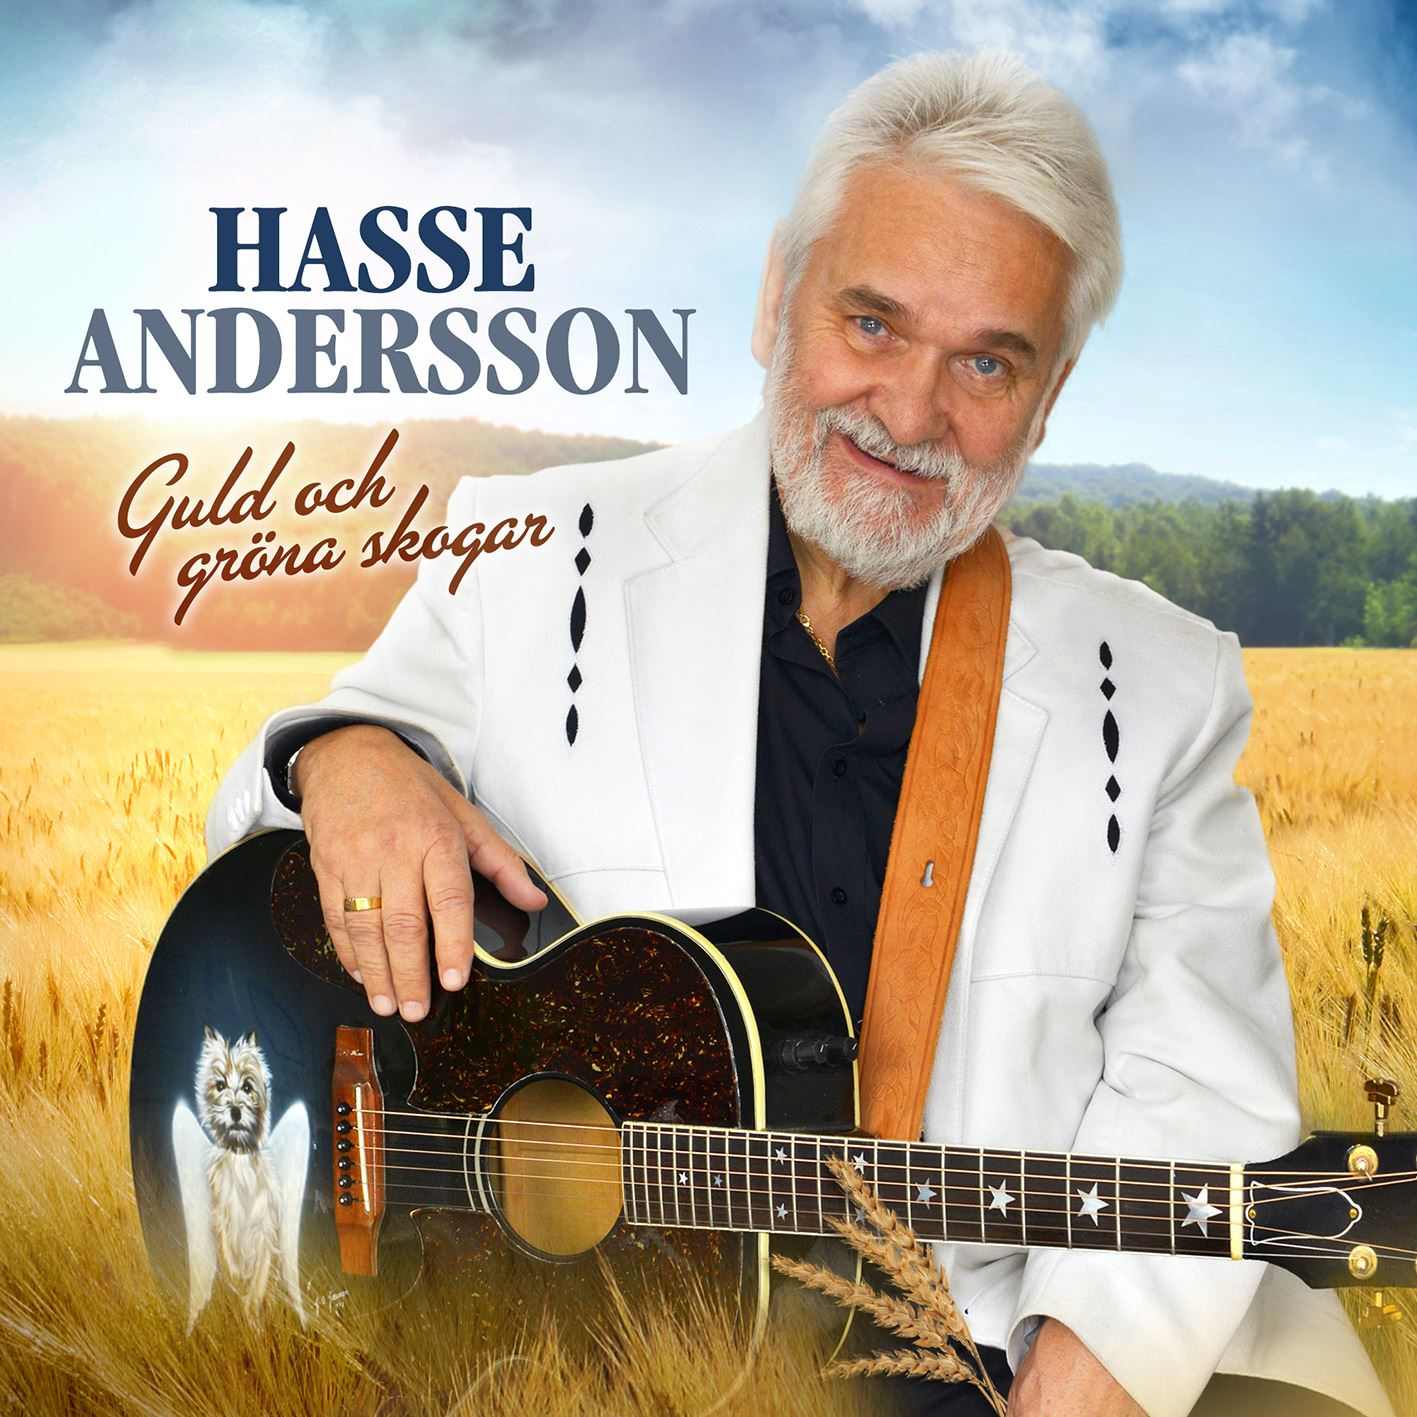 Concert - Hasse Andersson